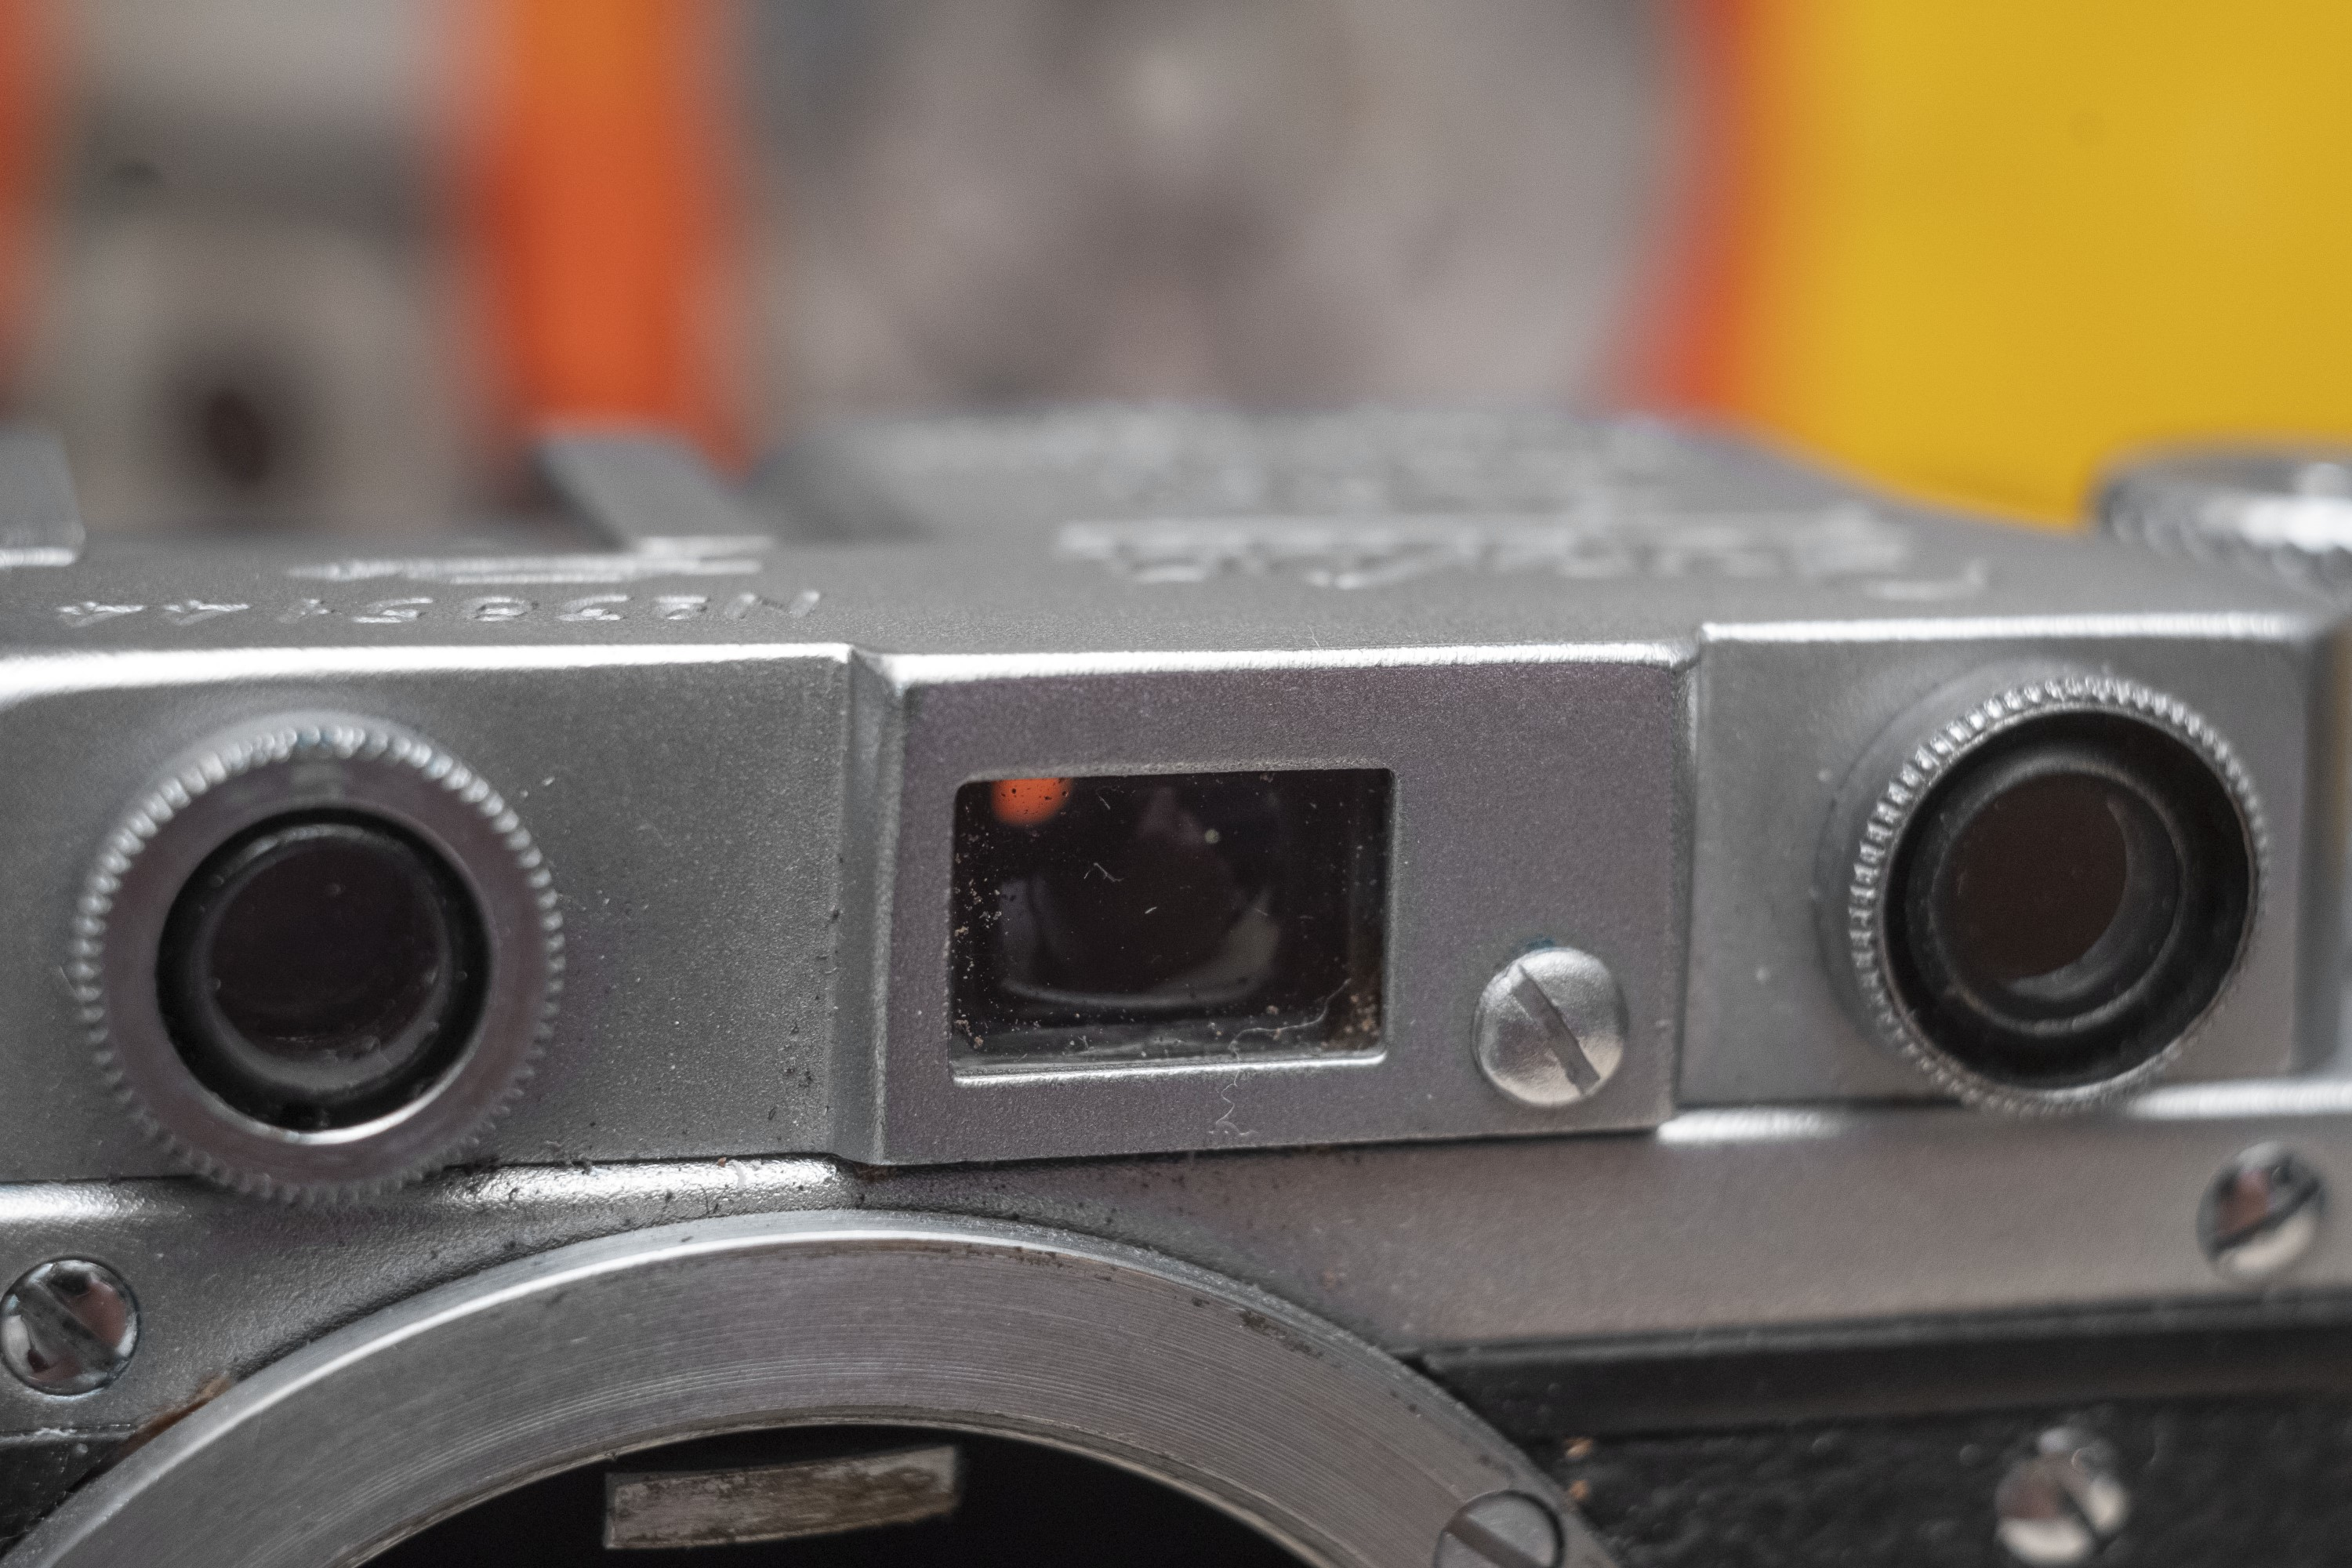 How to Spot a Fake Leica TL;DR Version